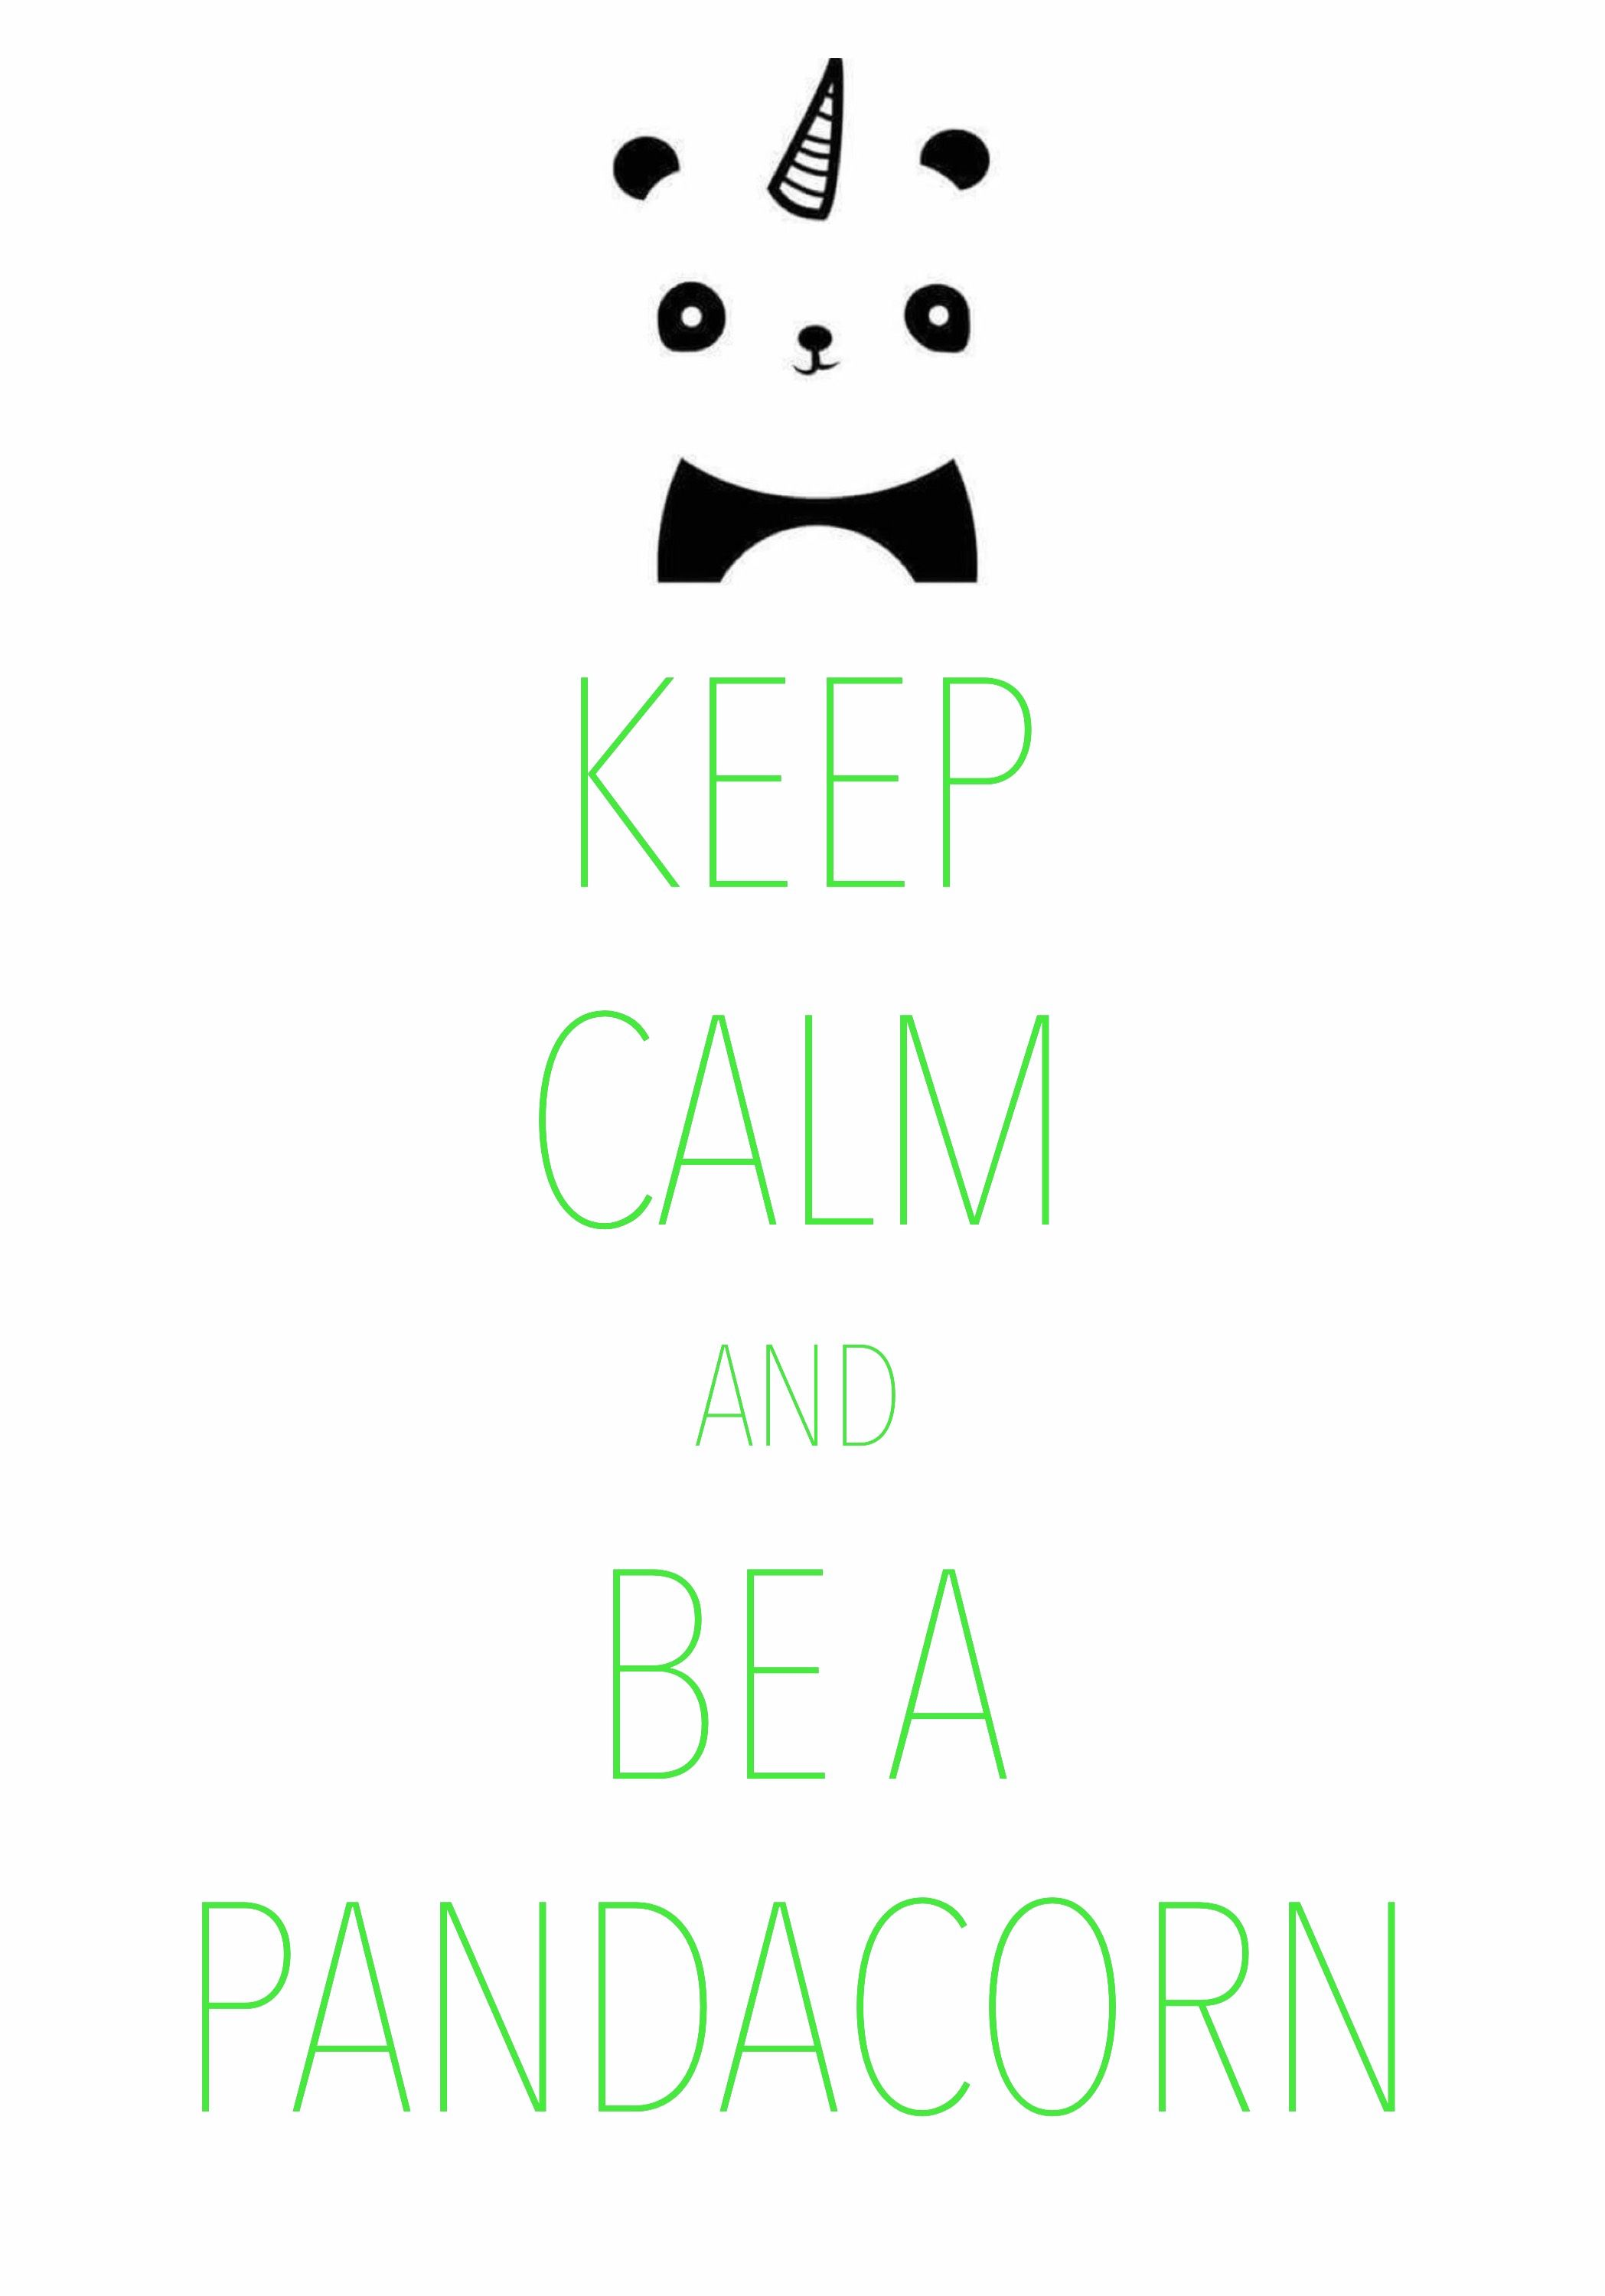 keep calm and be a pandacorn / created with Keep Calm and Carry On for iOS #keepcalm #pandacorn